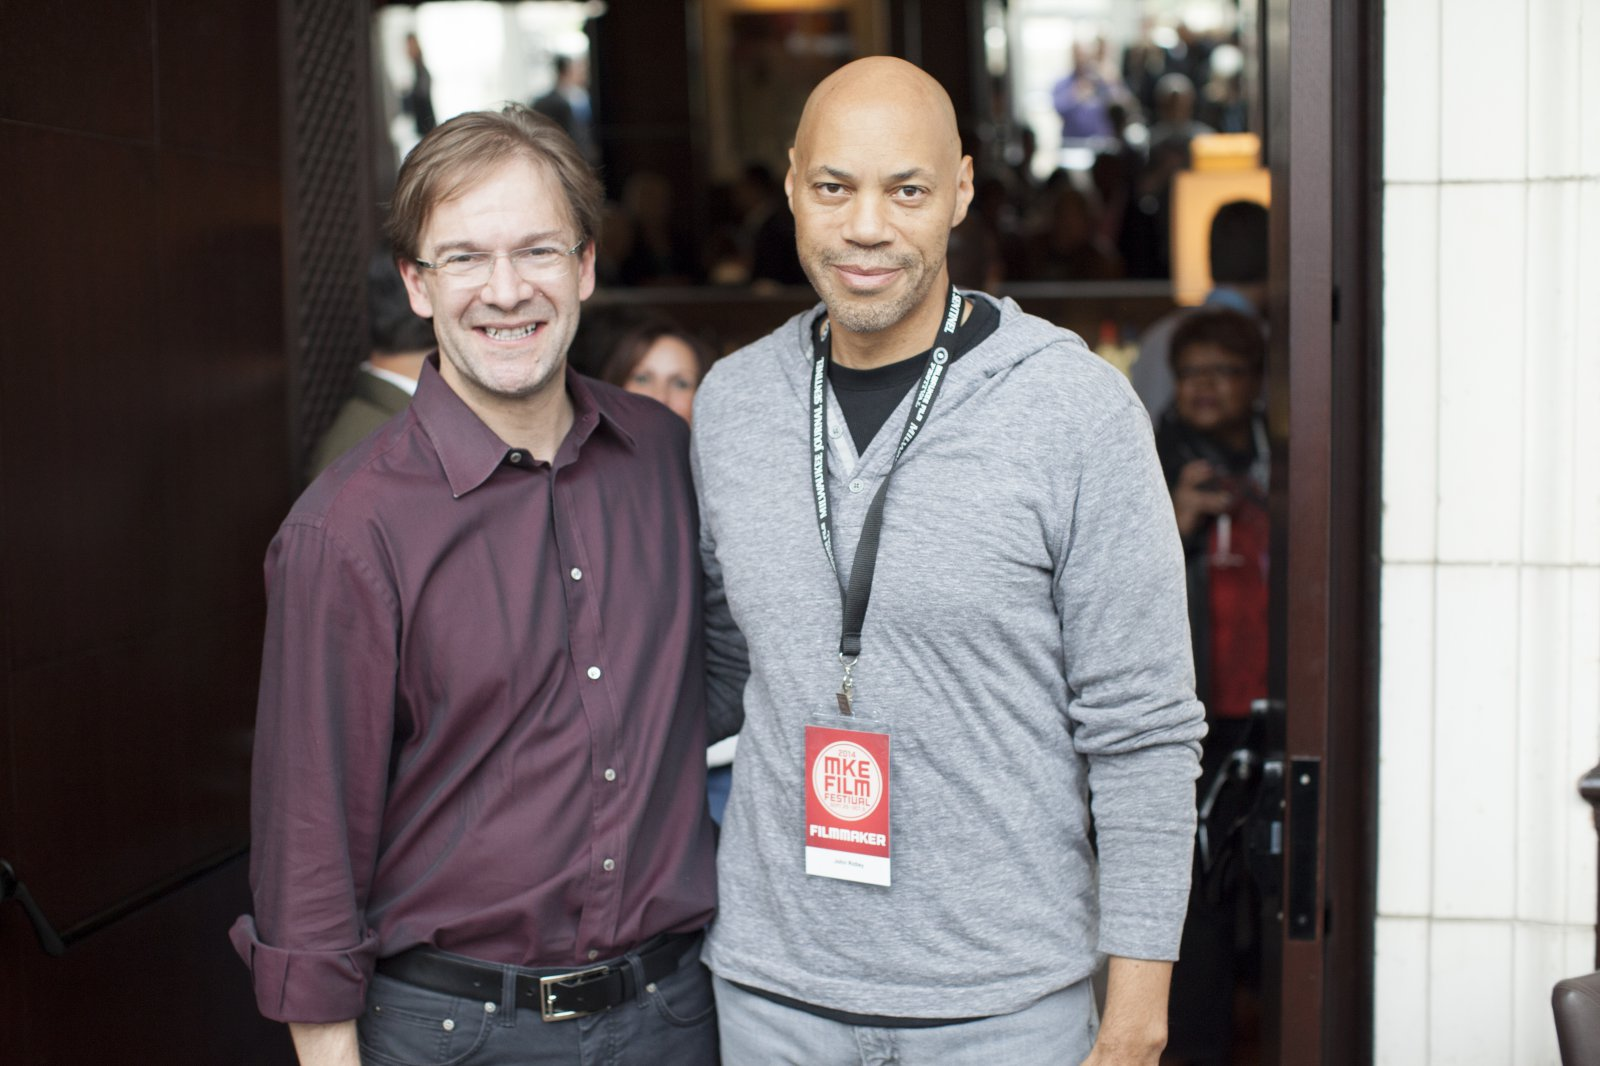 Chris Abele and John Ridley